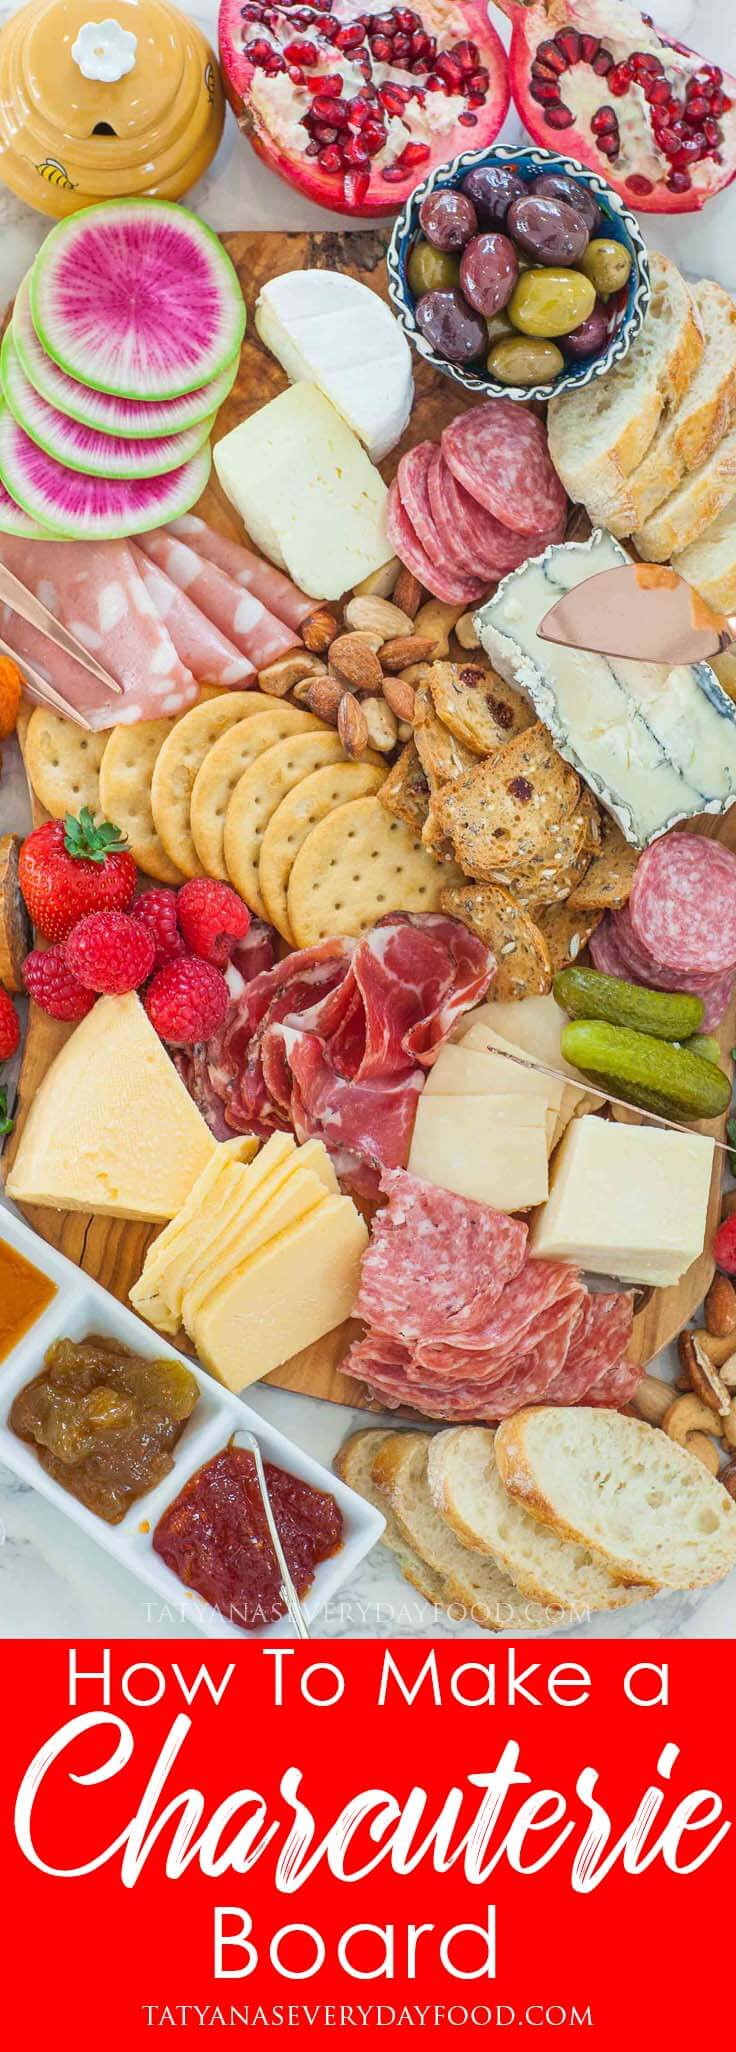 Step-by-Step: How To Make a Charcuterie Board for the holidays